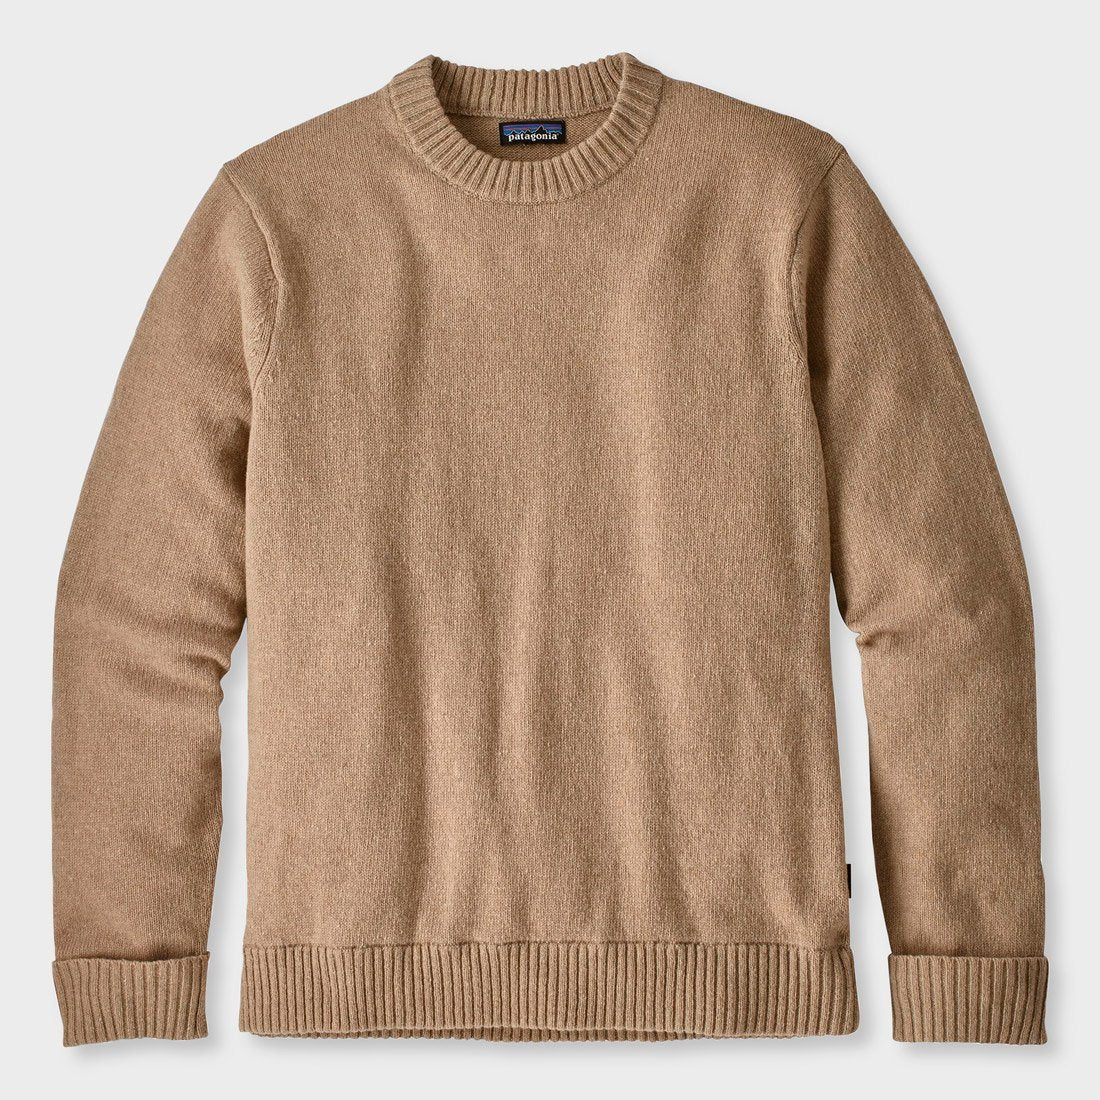 Patagonia Recycled Wool Sweater El Cap Khaki